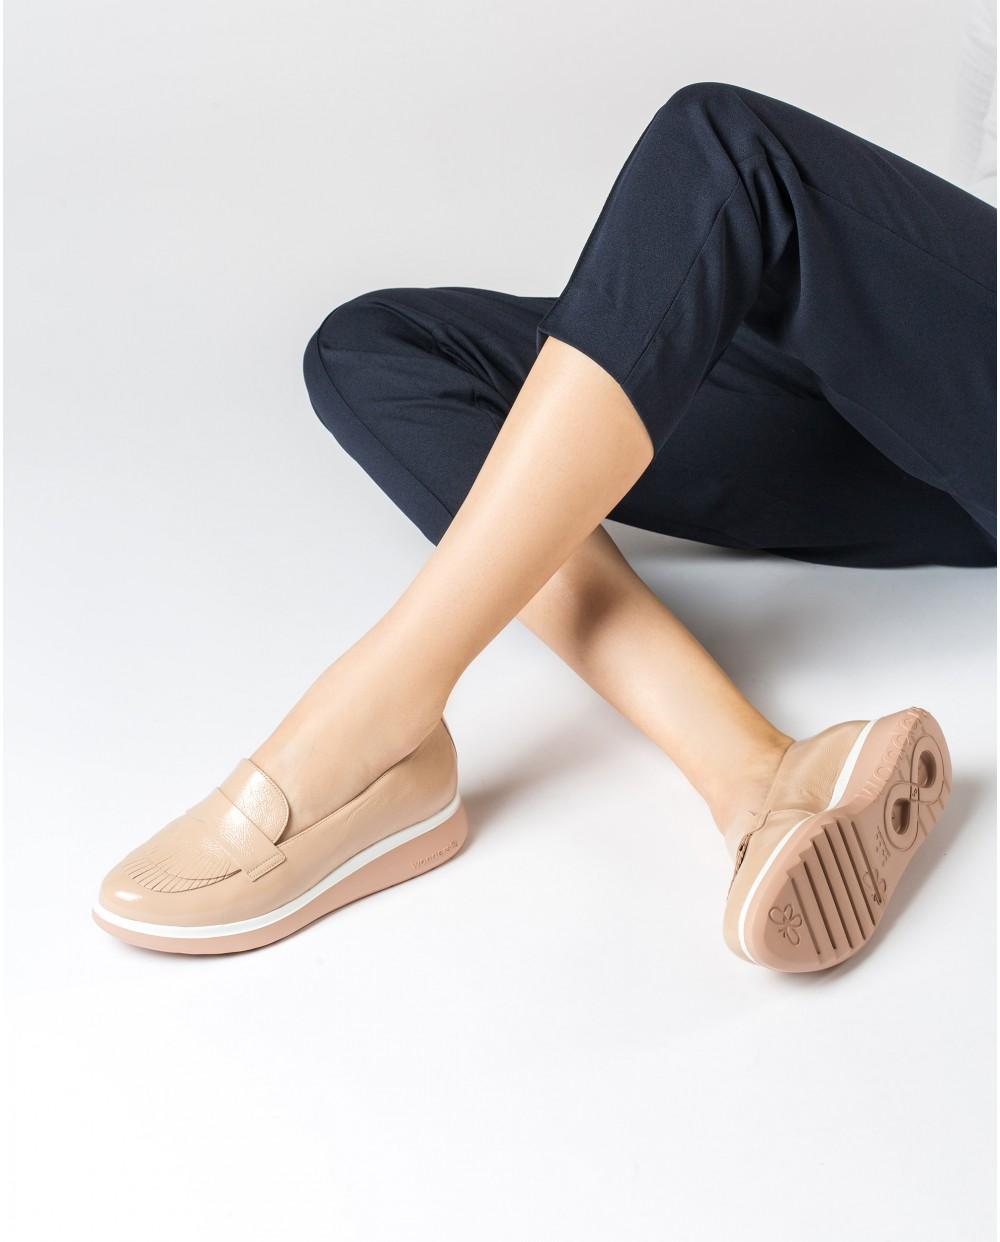 Wonders-Flat Shoes-Patent leather moccasins with fringe detail